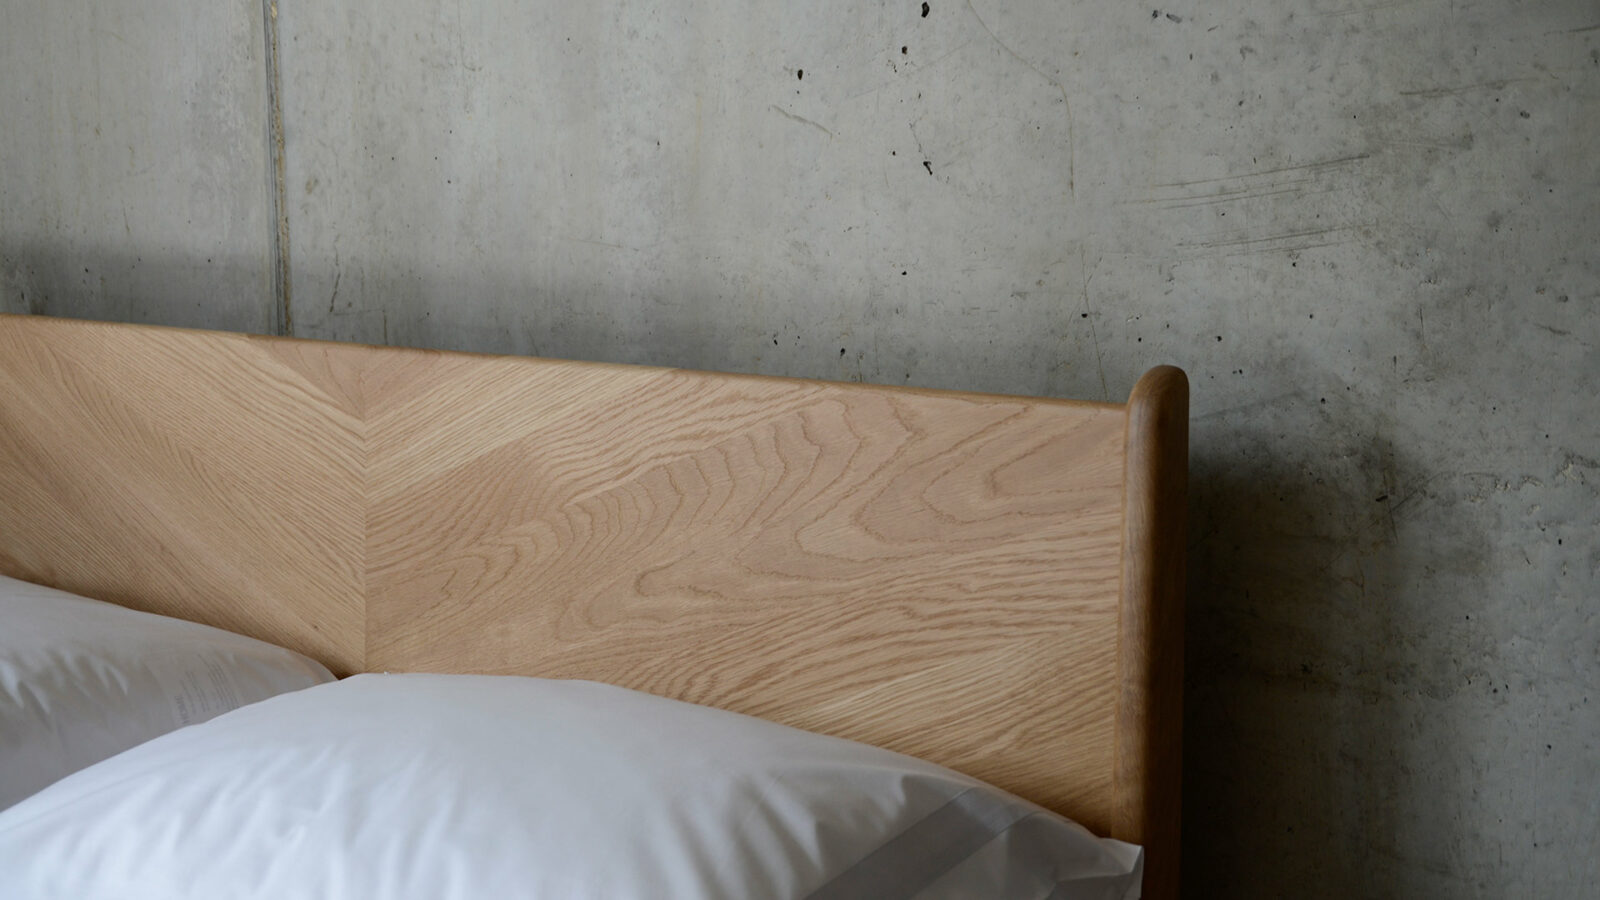 A closer view of the chevron design solid wood headboard of the Oak Hoxton bed